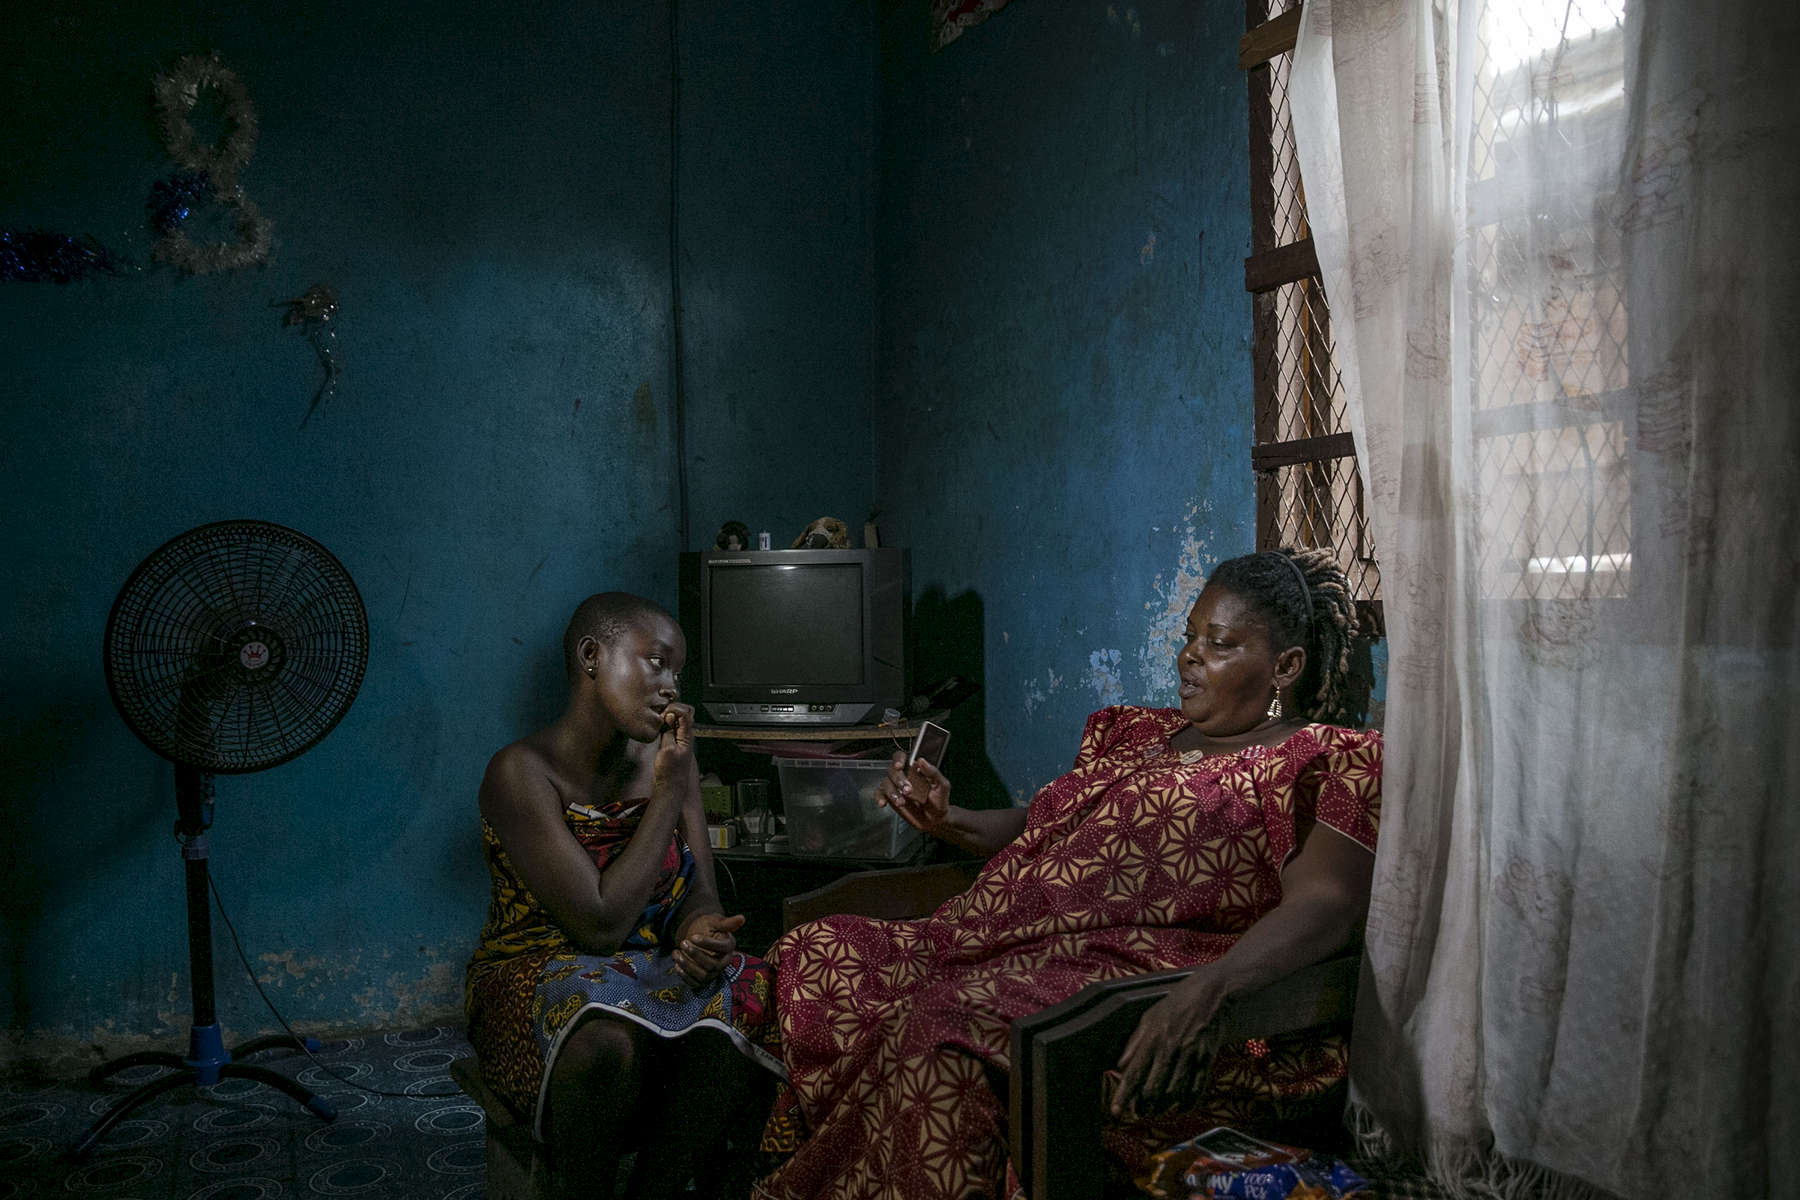 Sylvia Virginie Voua ( known as Aicha ) sits with her granddaughter, Roseline Nad, inside the main room of her compound. The buildings house numerous widows who lost their husbands during Ivory Coast's political crises.